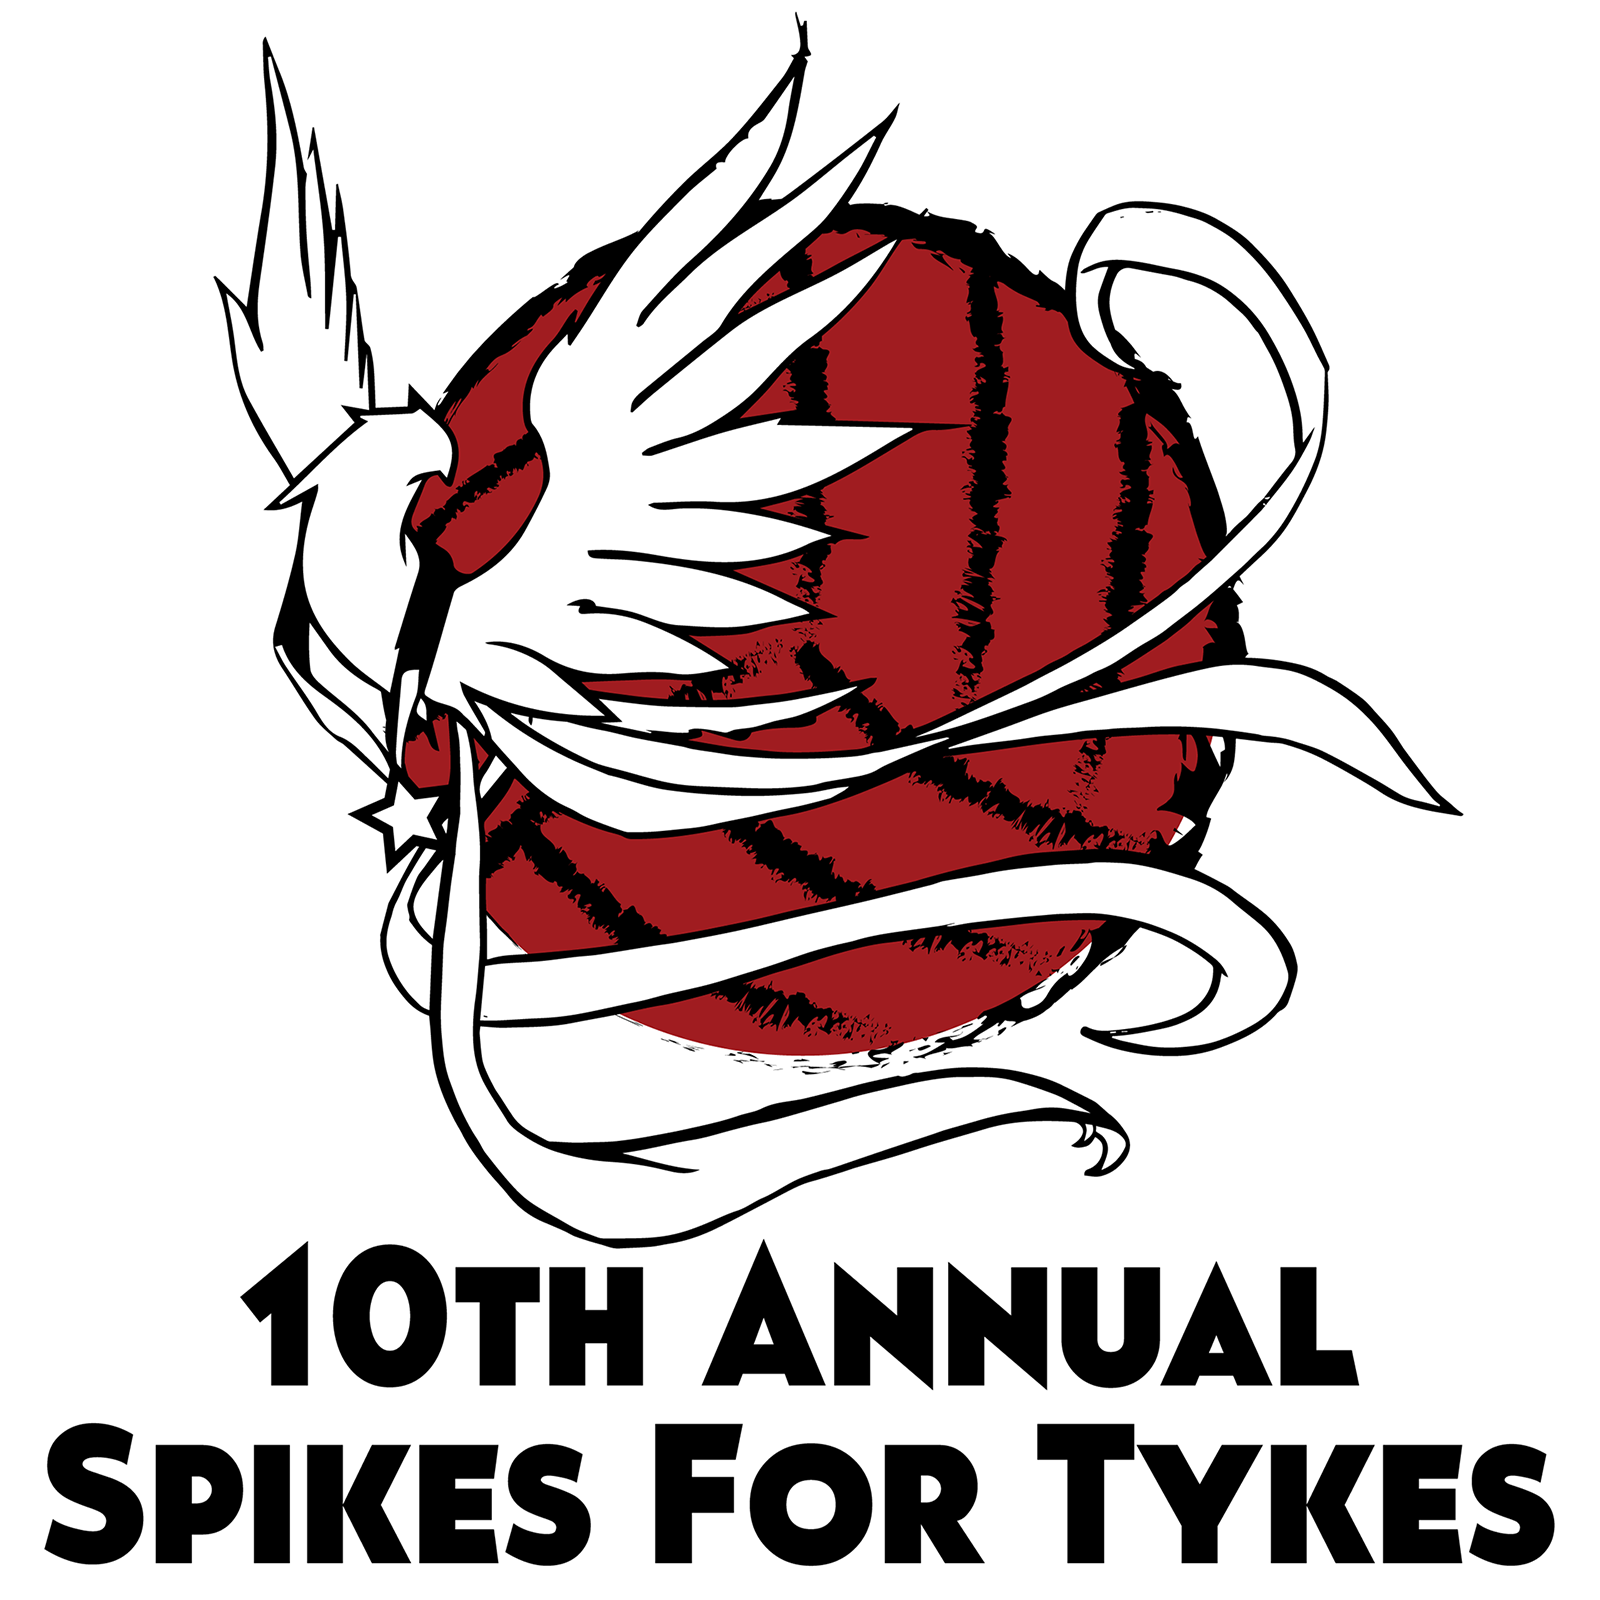 https://spikesfortykes.org/wp-content/uploads/2019/10/spikes19_cover.png